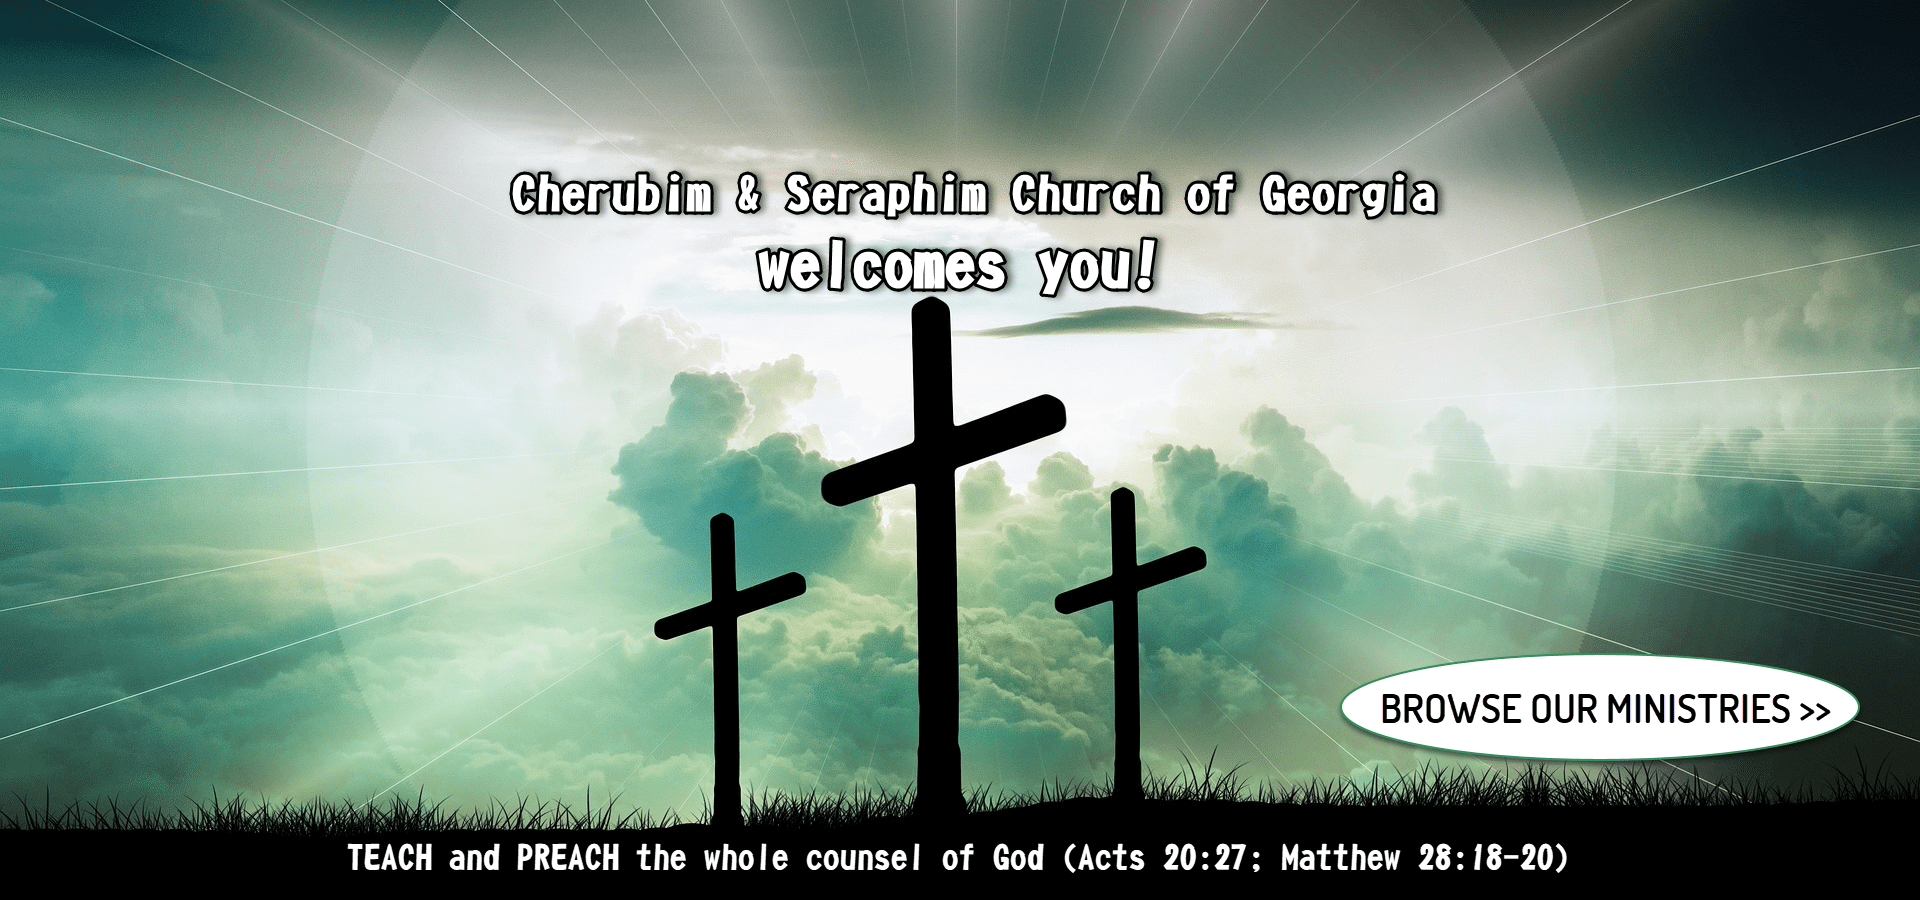 Cherubim and Seraphim Church of Georgia welcomes you